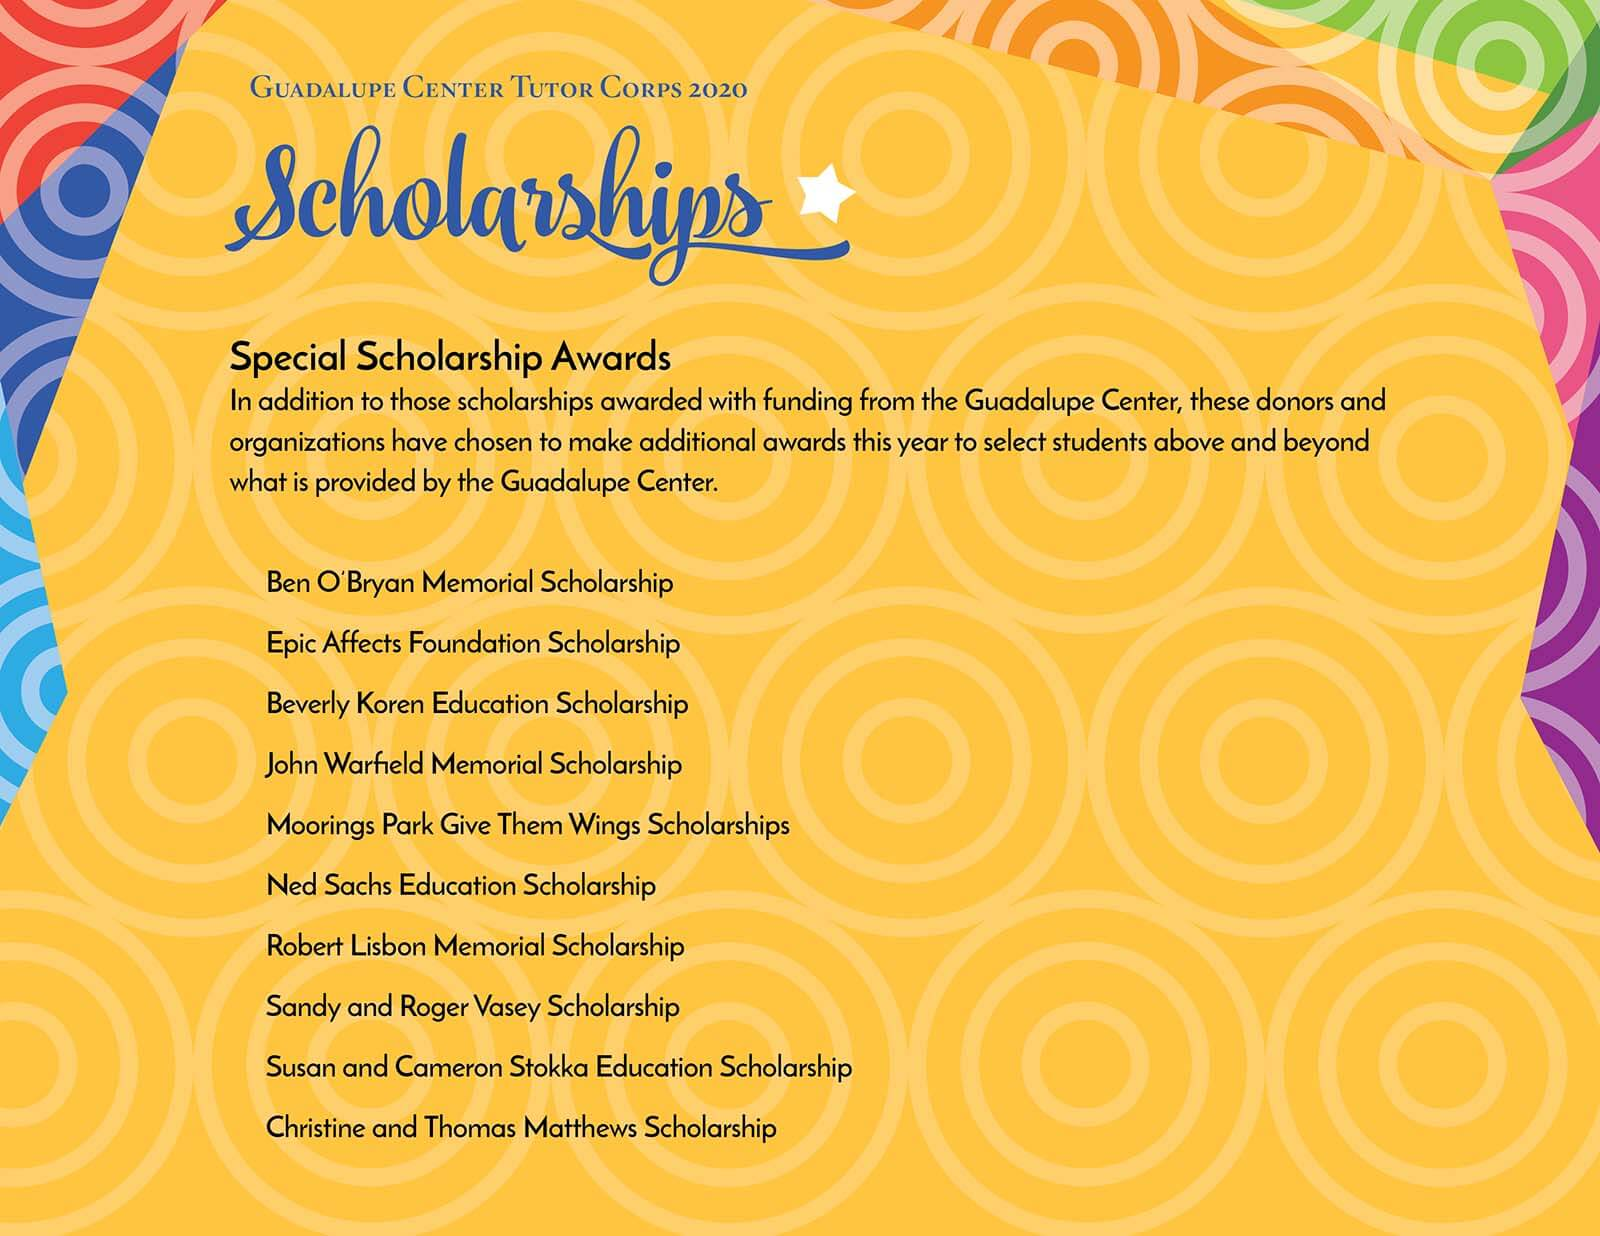 Guadalupe Center Tutors Corps Graduate Special Scholarship Awards